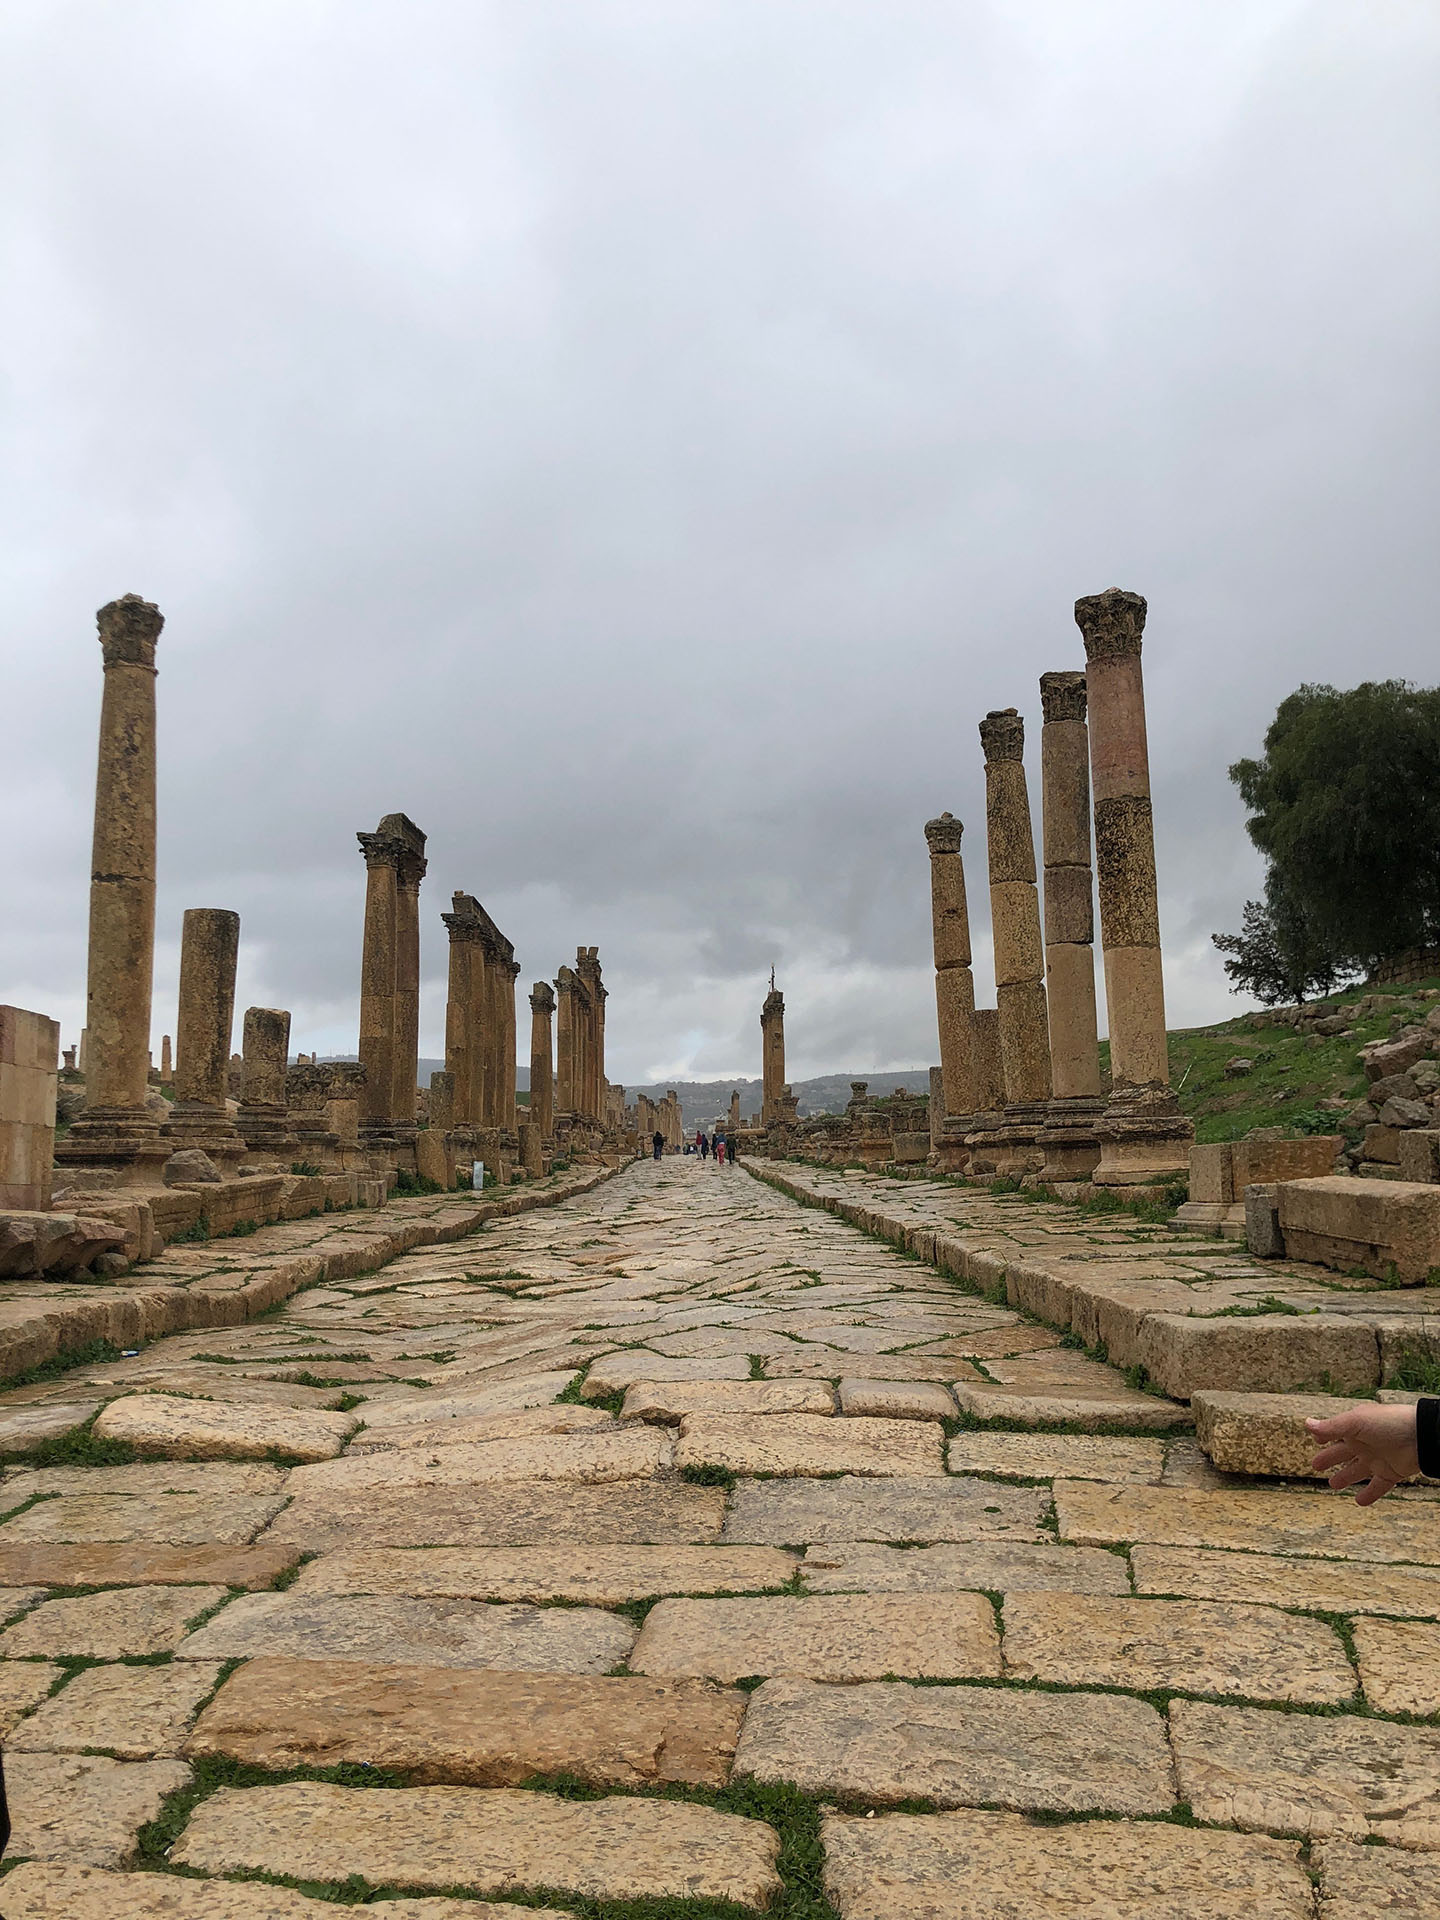 Amideast had an excursion to Jerash and Ajloun! Photo credit: Arguin, 2019